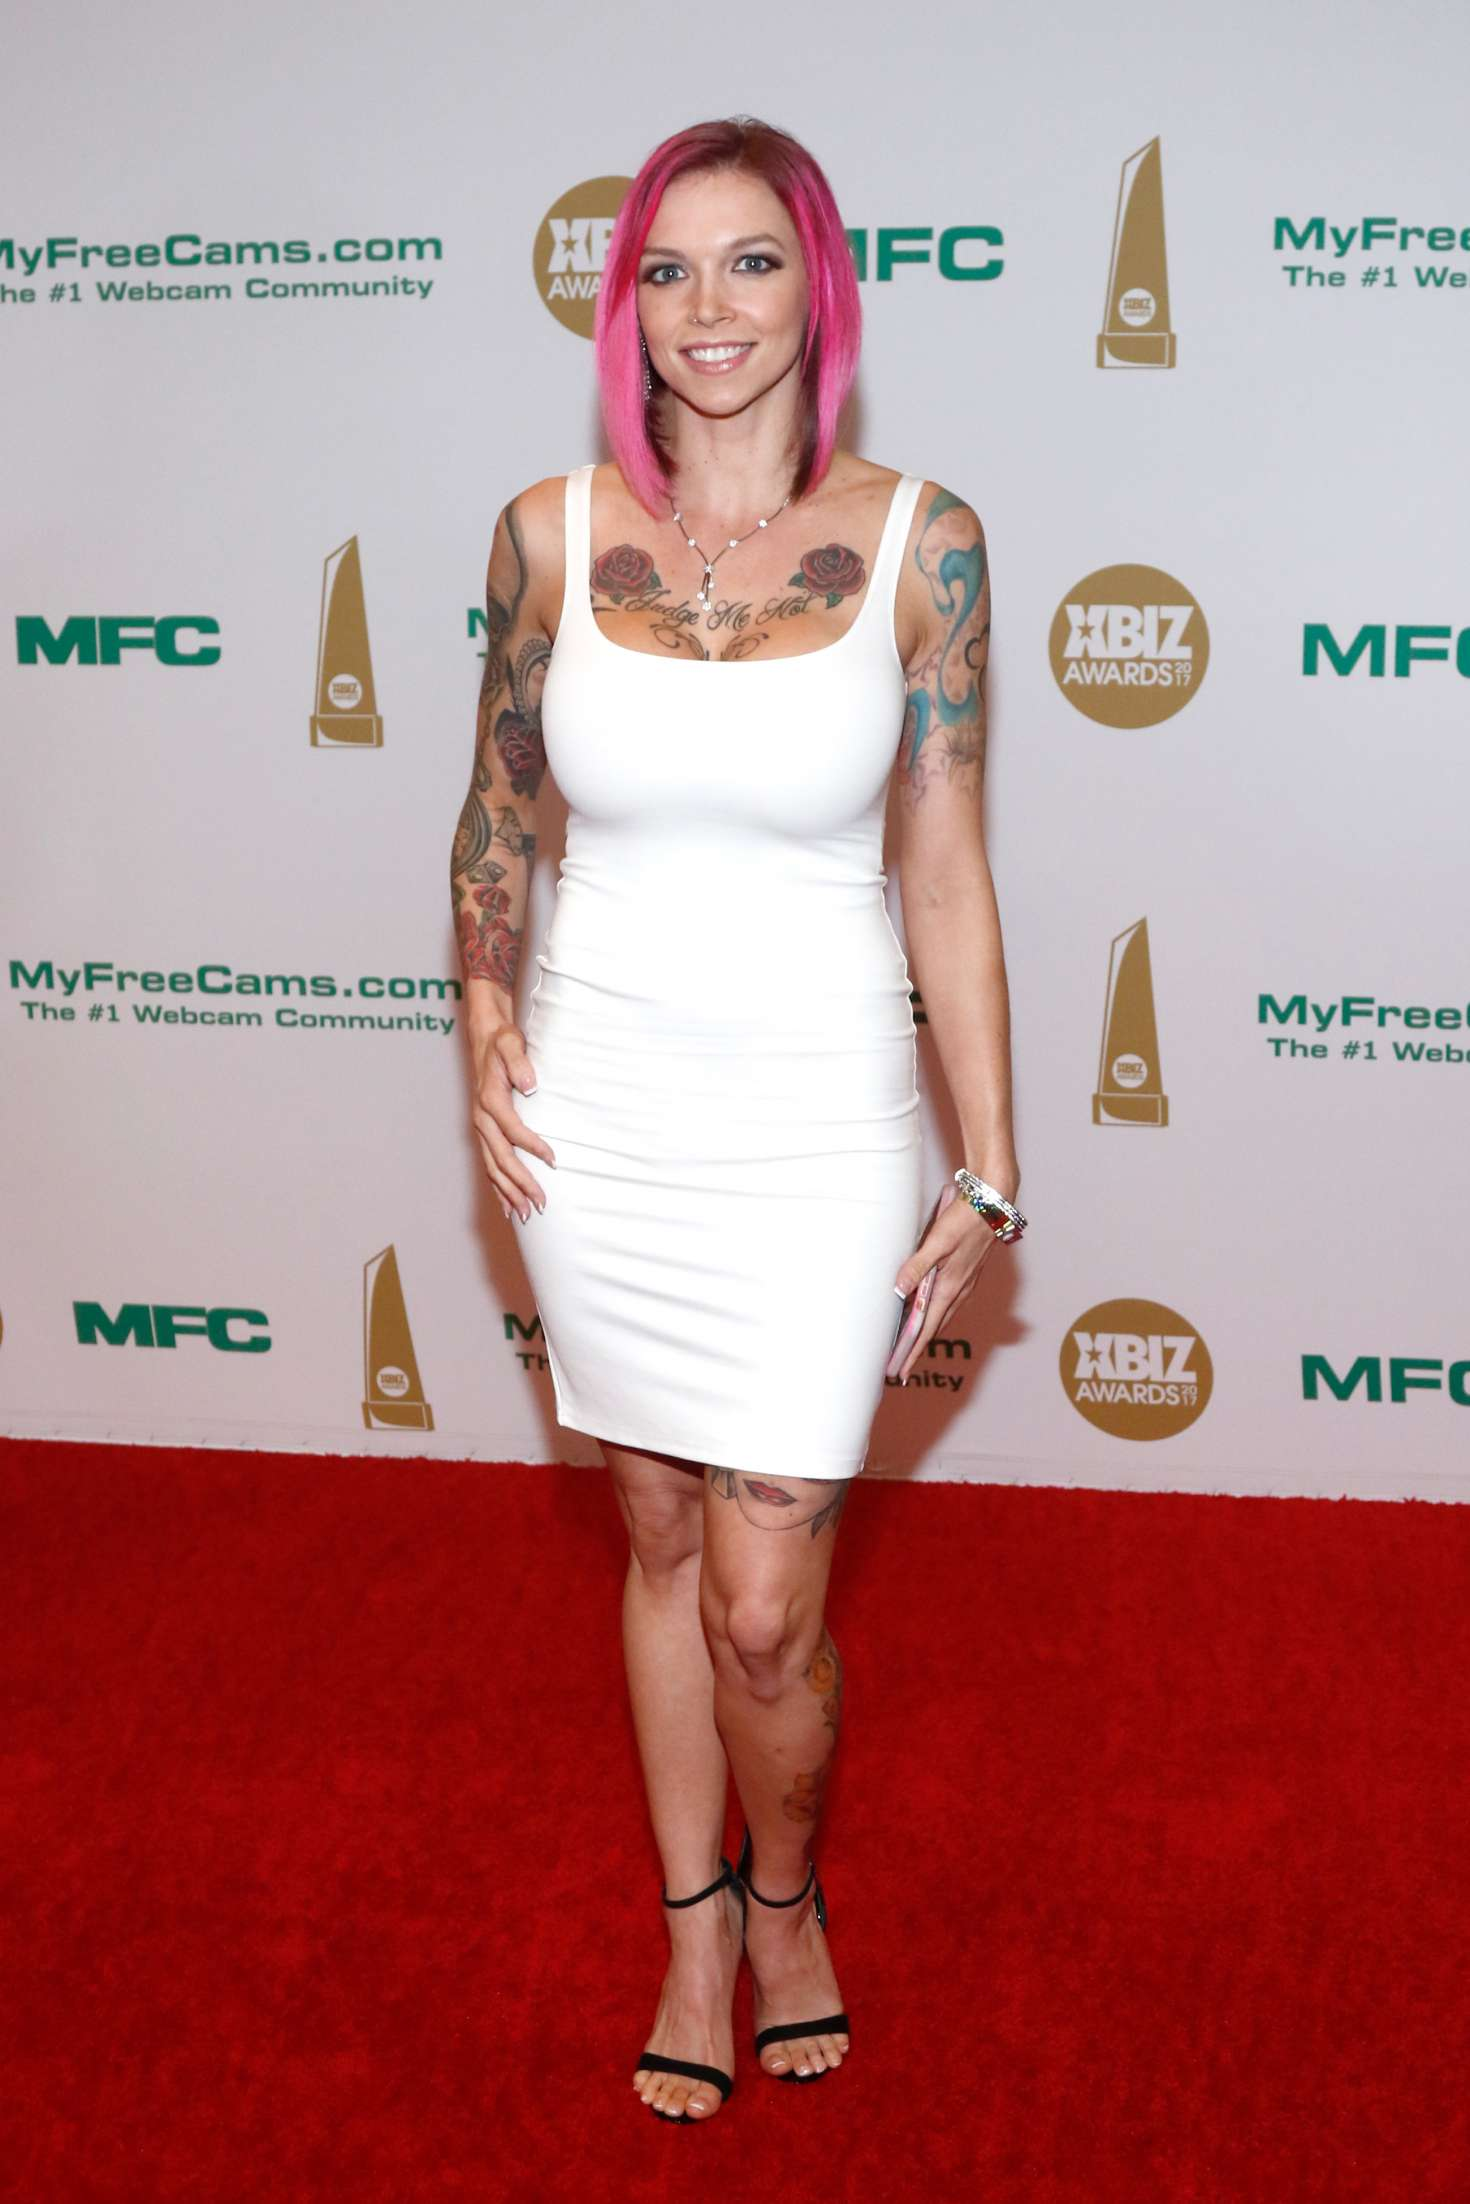 images Anna Bell Peaks